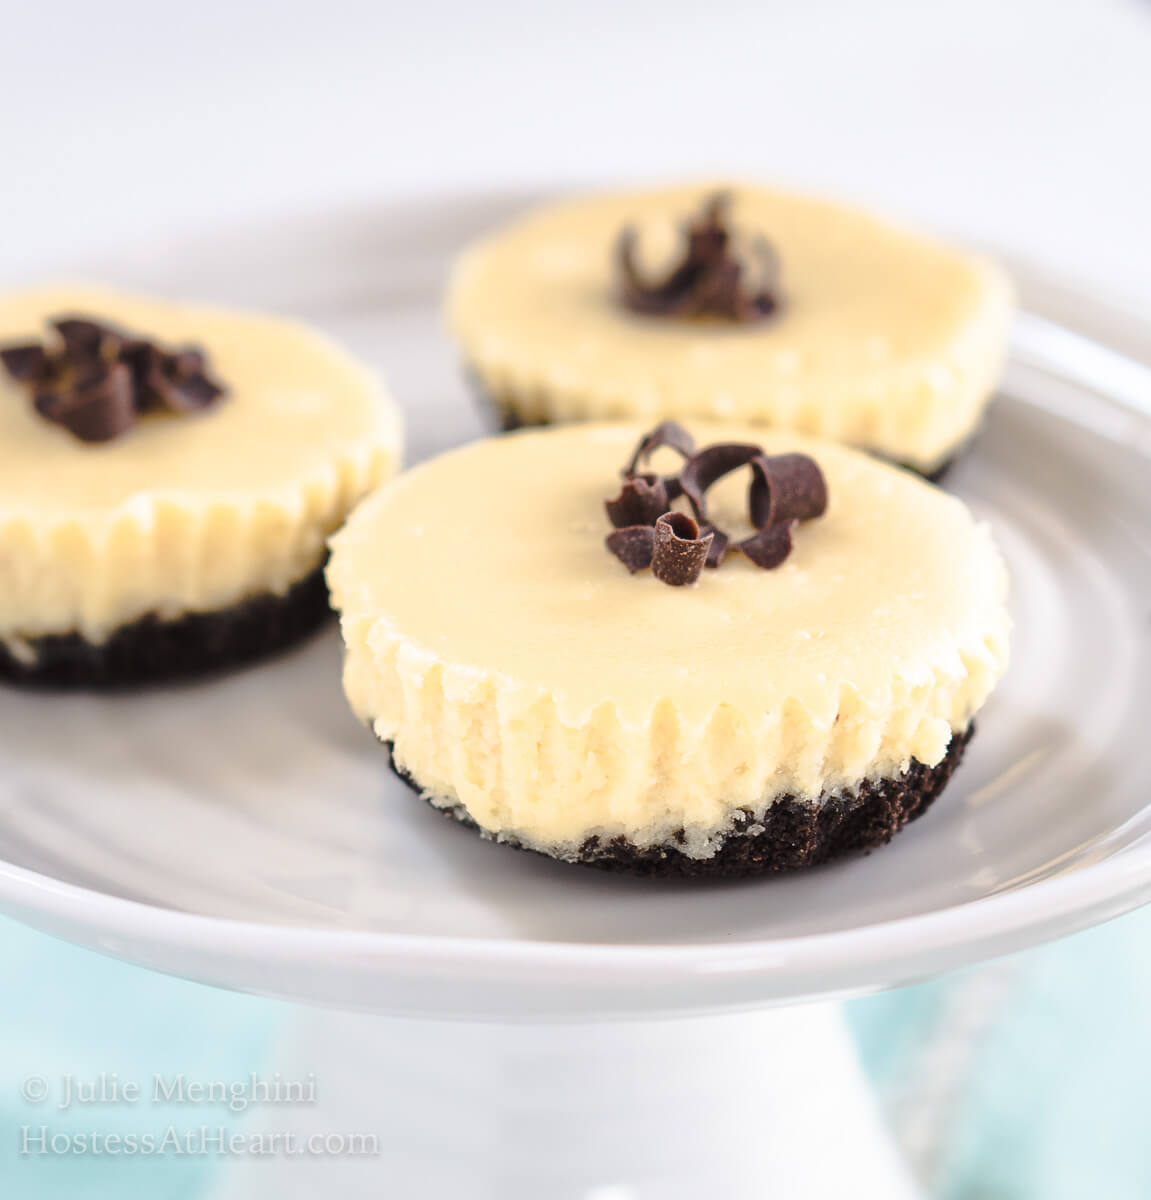 Decadent Chocolate Caramel Baileys Mini Cheesecakes